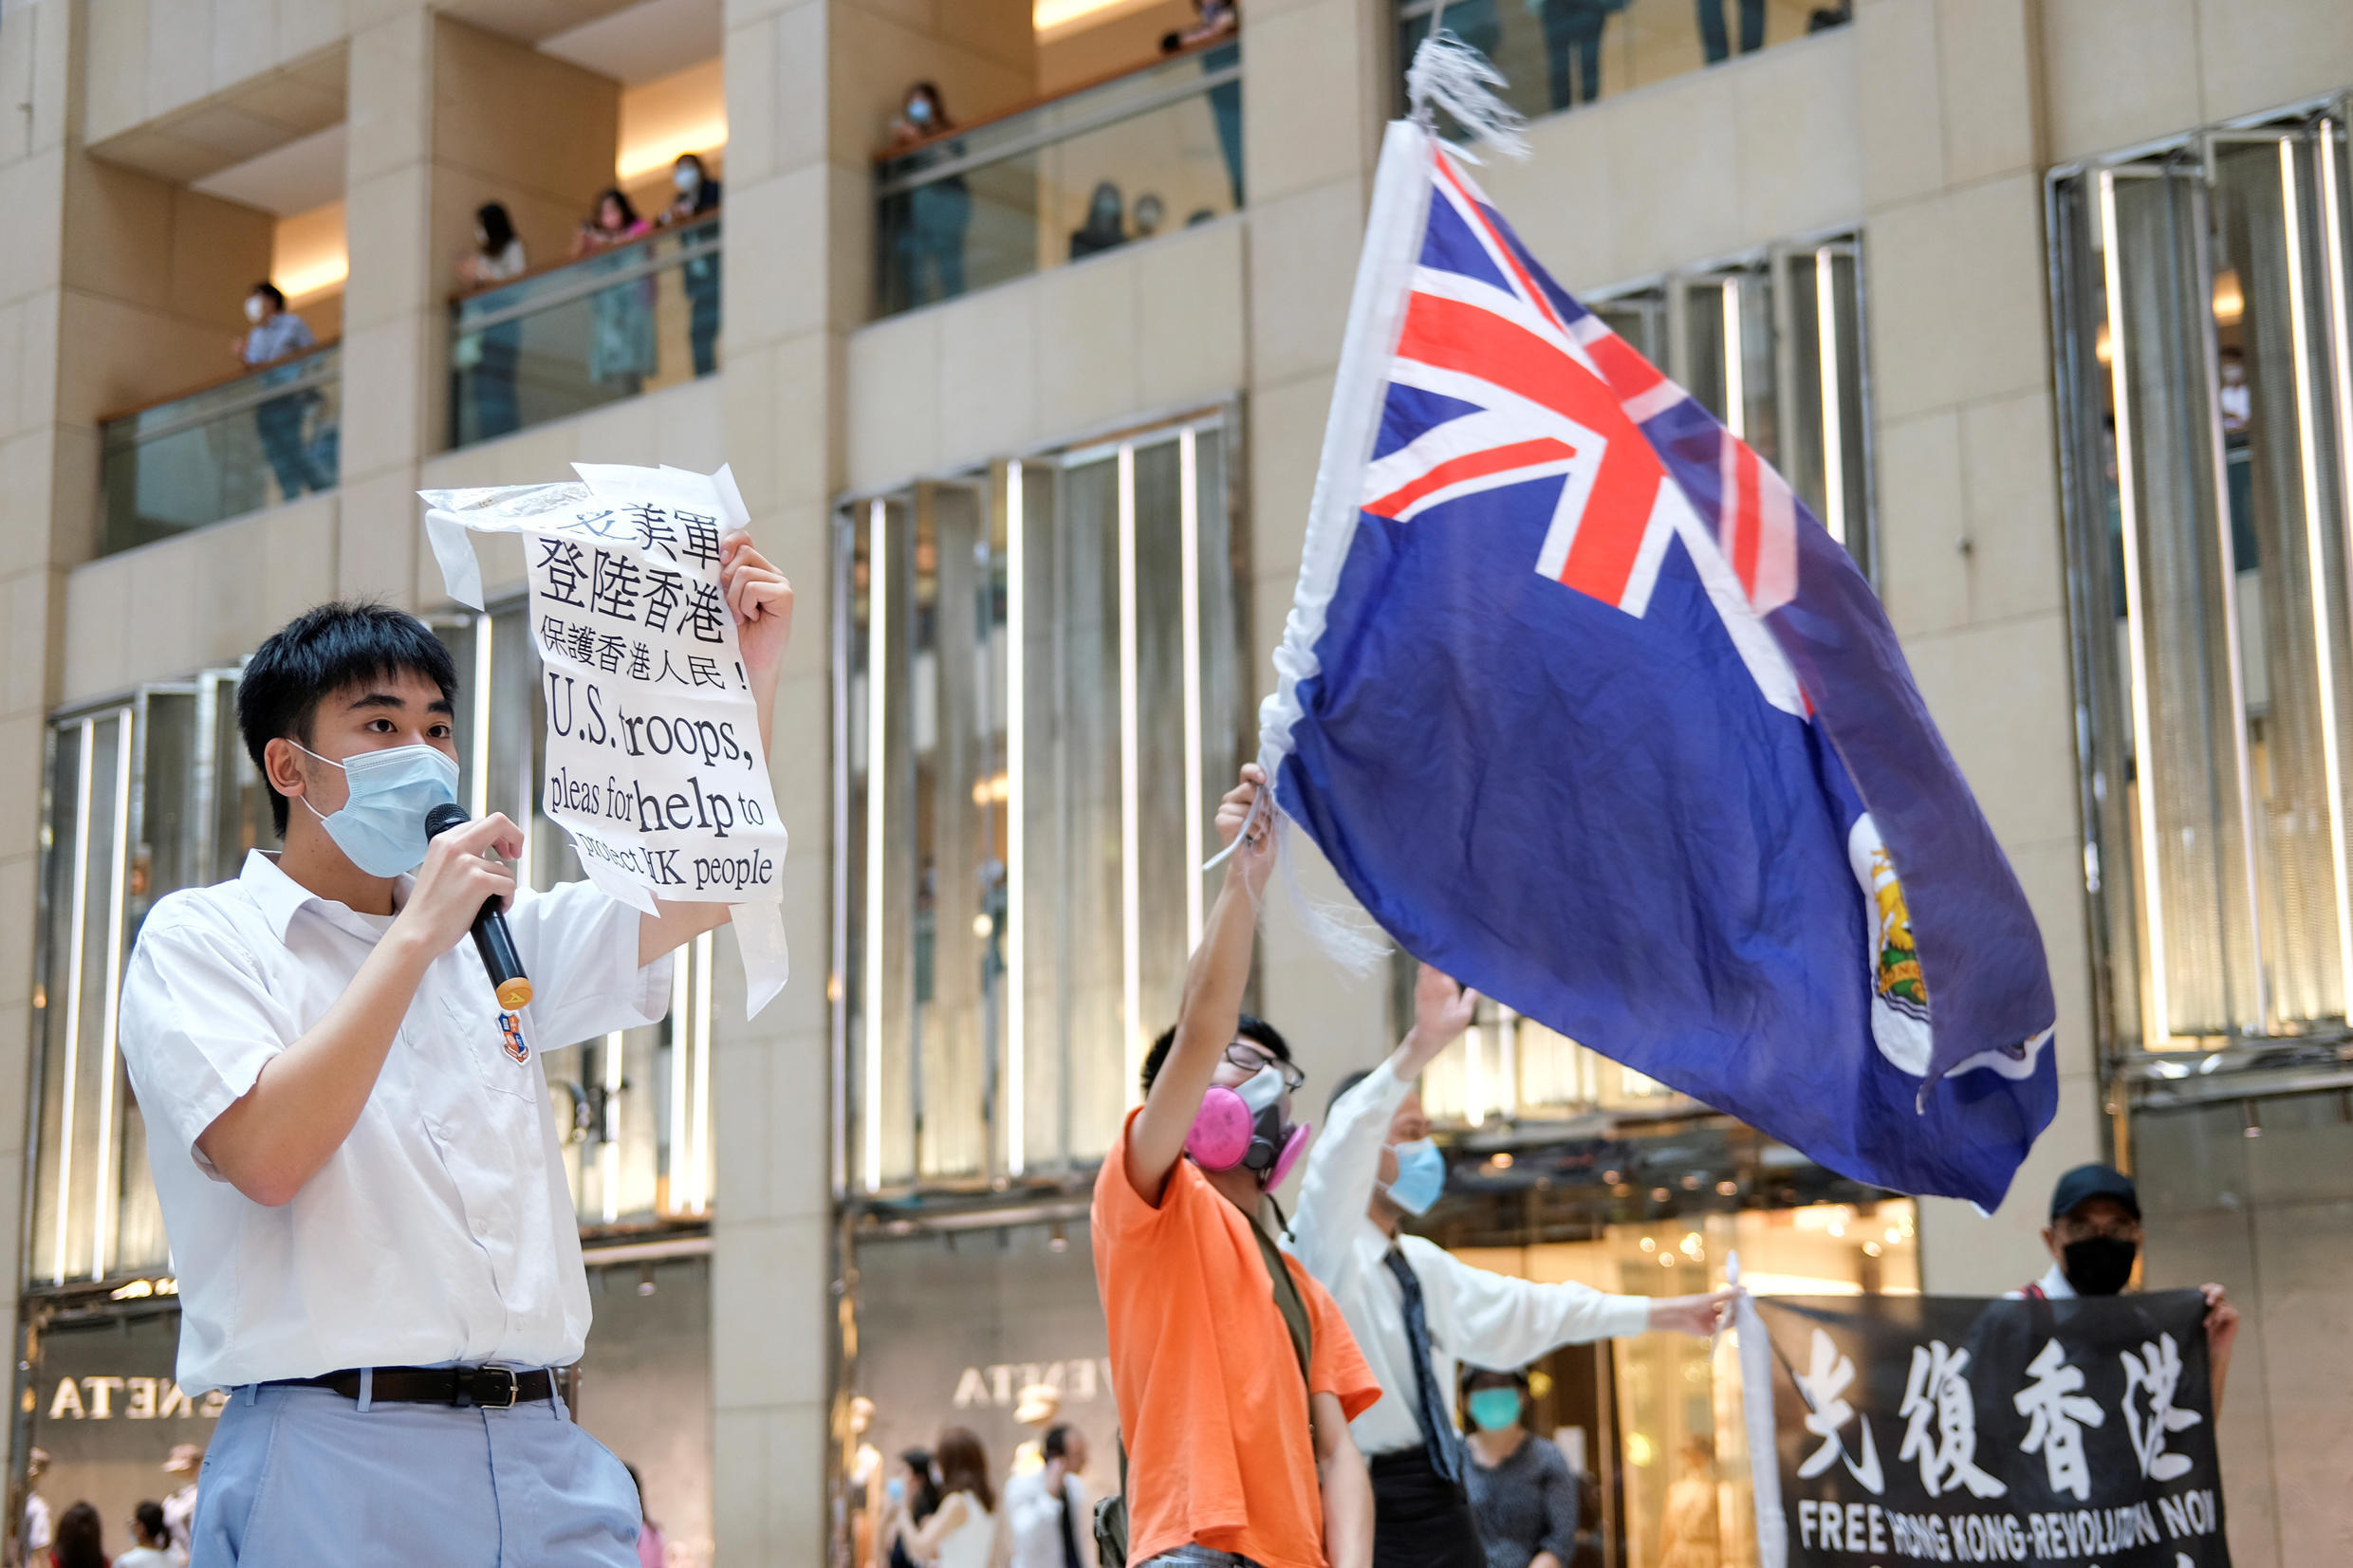 A pro-democracy demonstrator wearing a face mask waves the British colonial Hong Kong flag as another one holds a sign during a protest against new national security legislation in Hong Kong, China June 1, 2020.